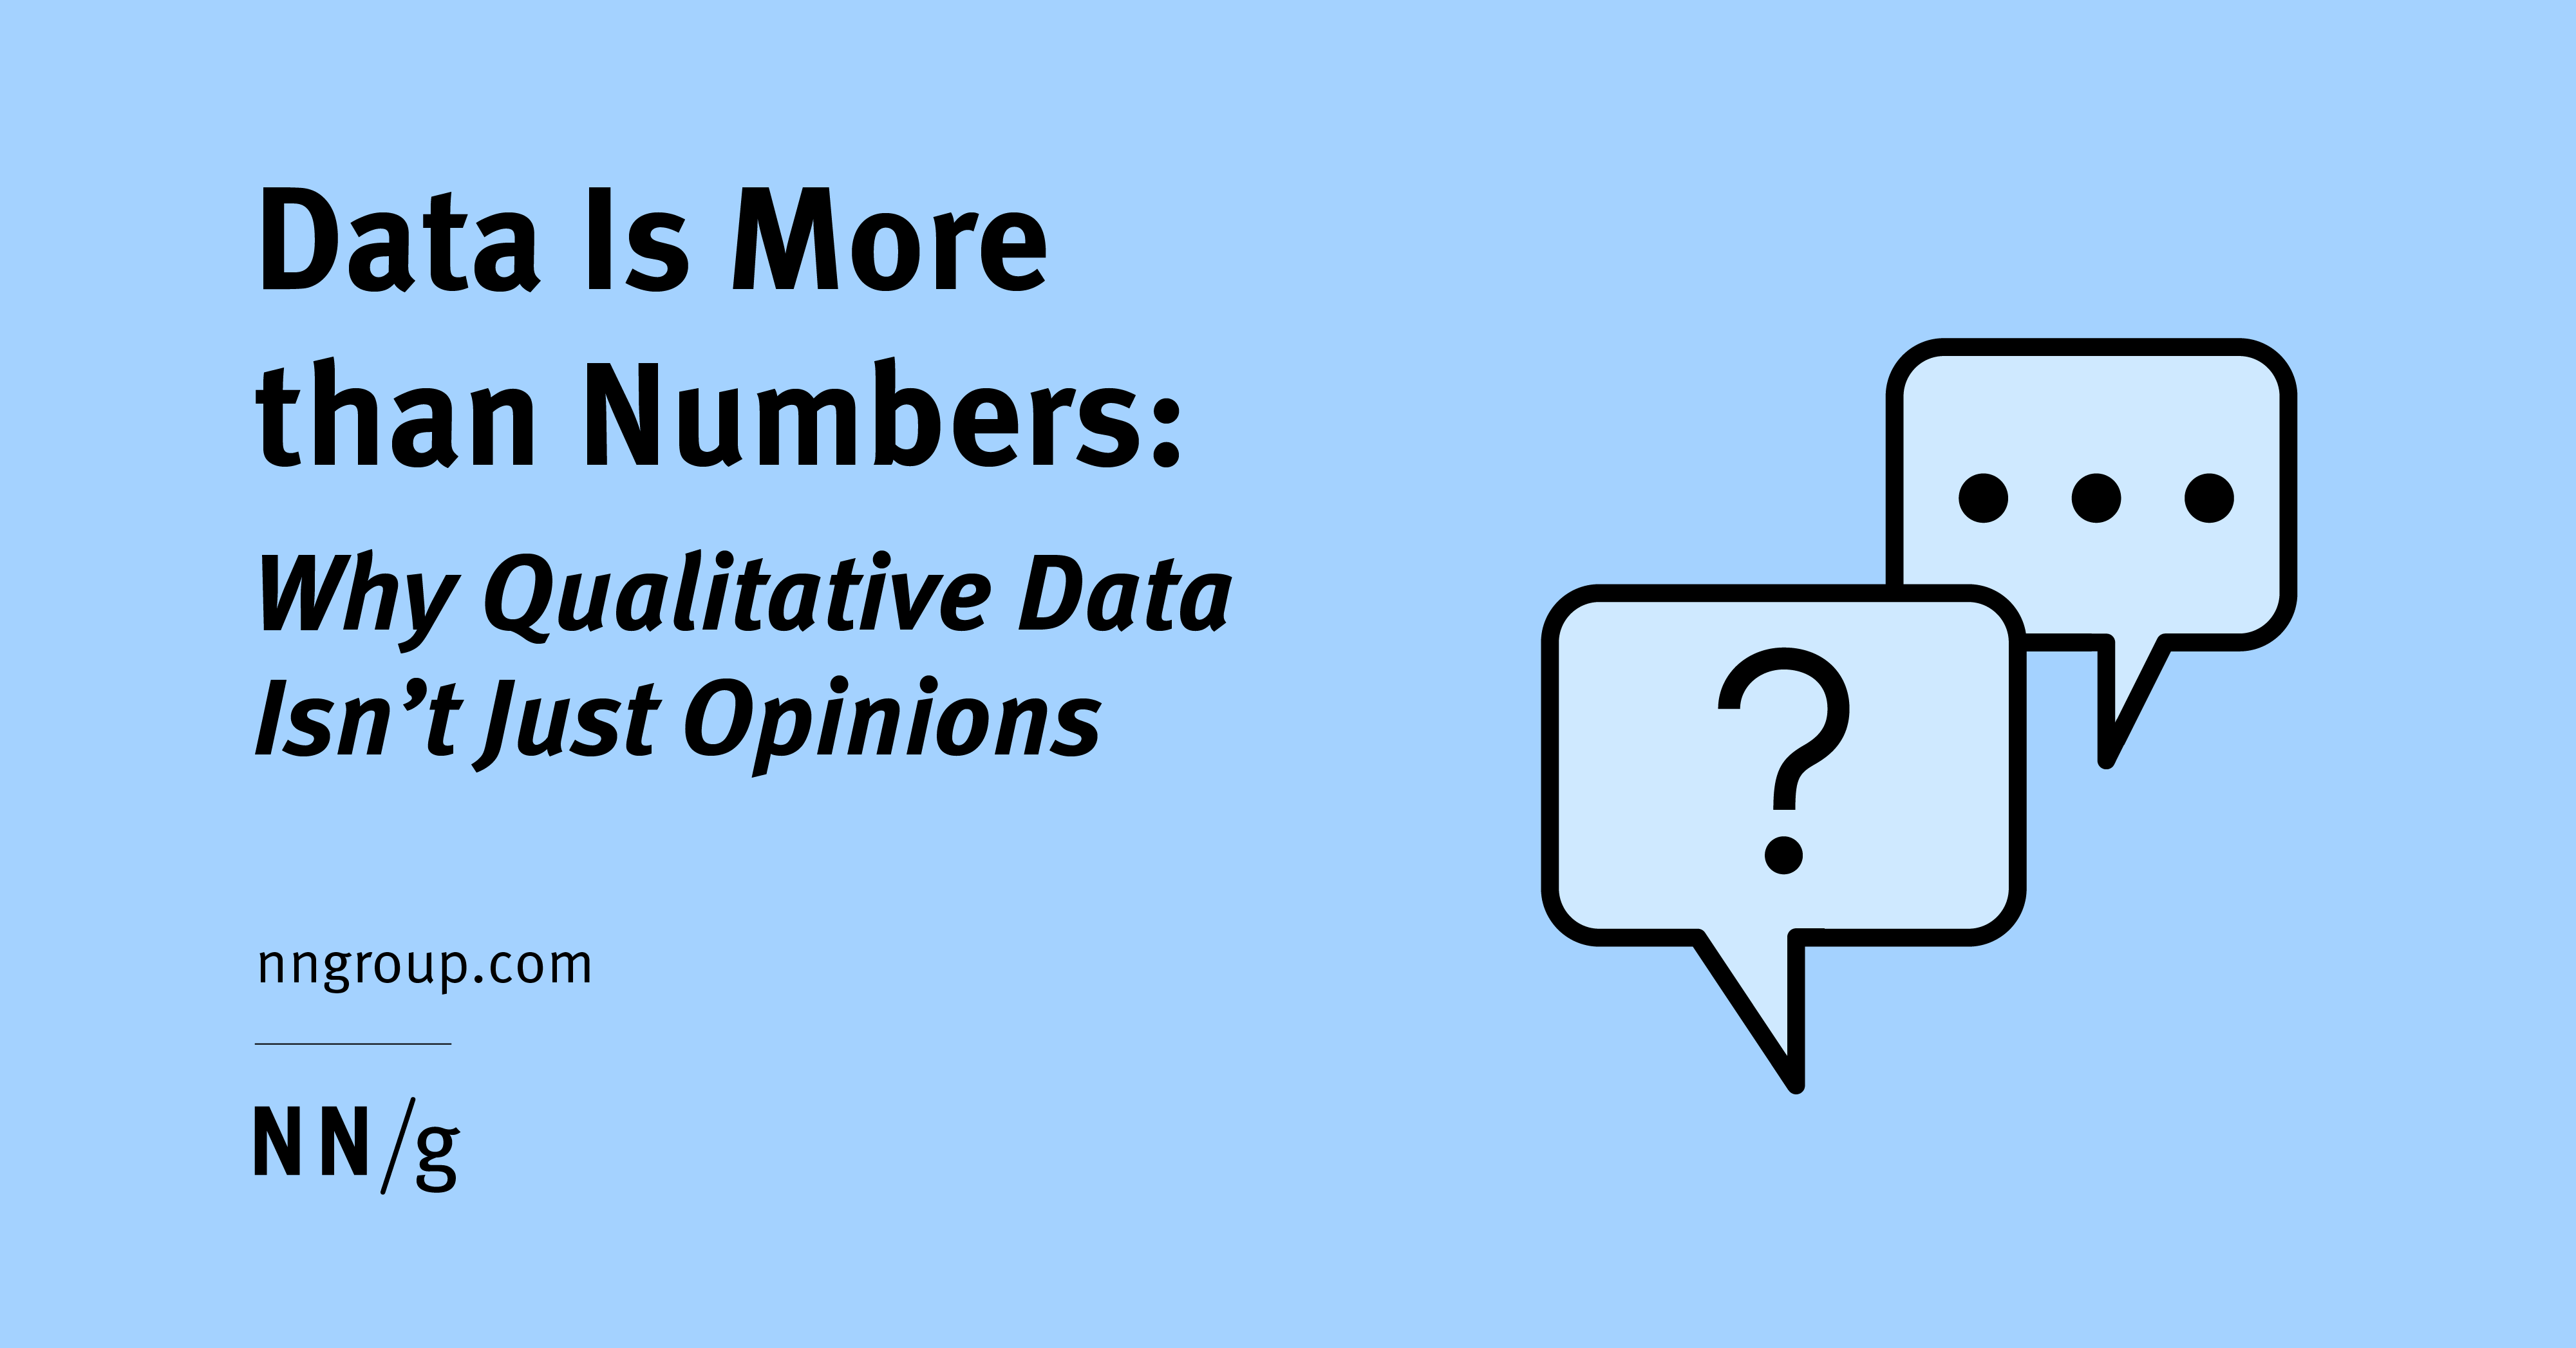 Data Is More than Numbers: Why Qualitative Data Isn't Just Opinions